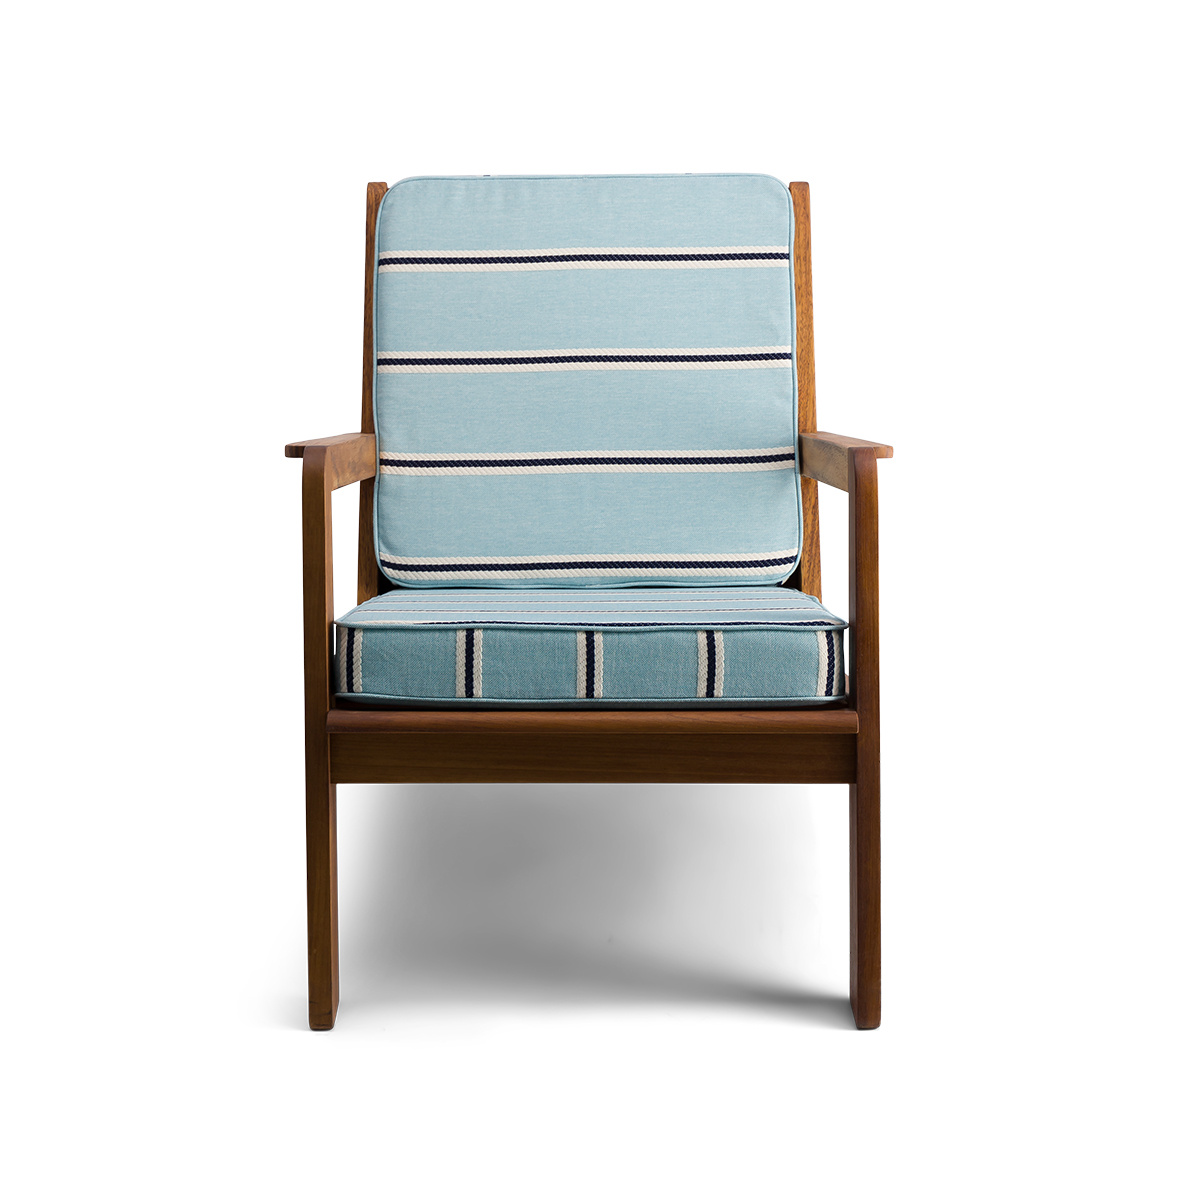 Gloria fireside chair brown wood, striped light blue Dedar fabric